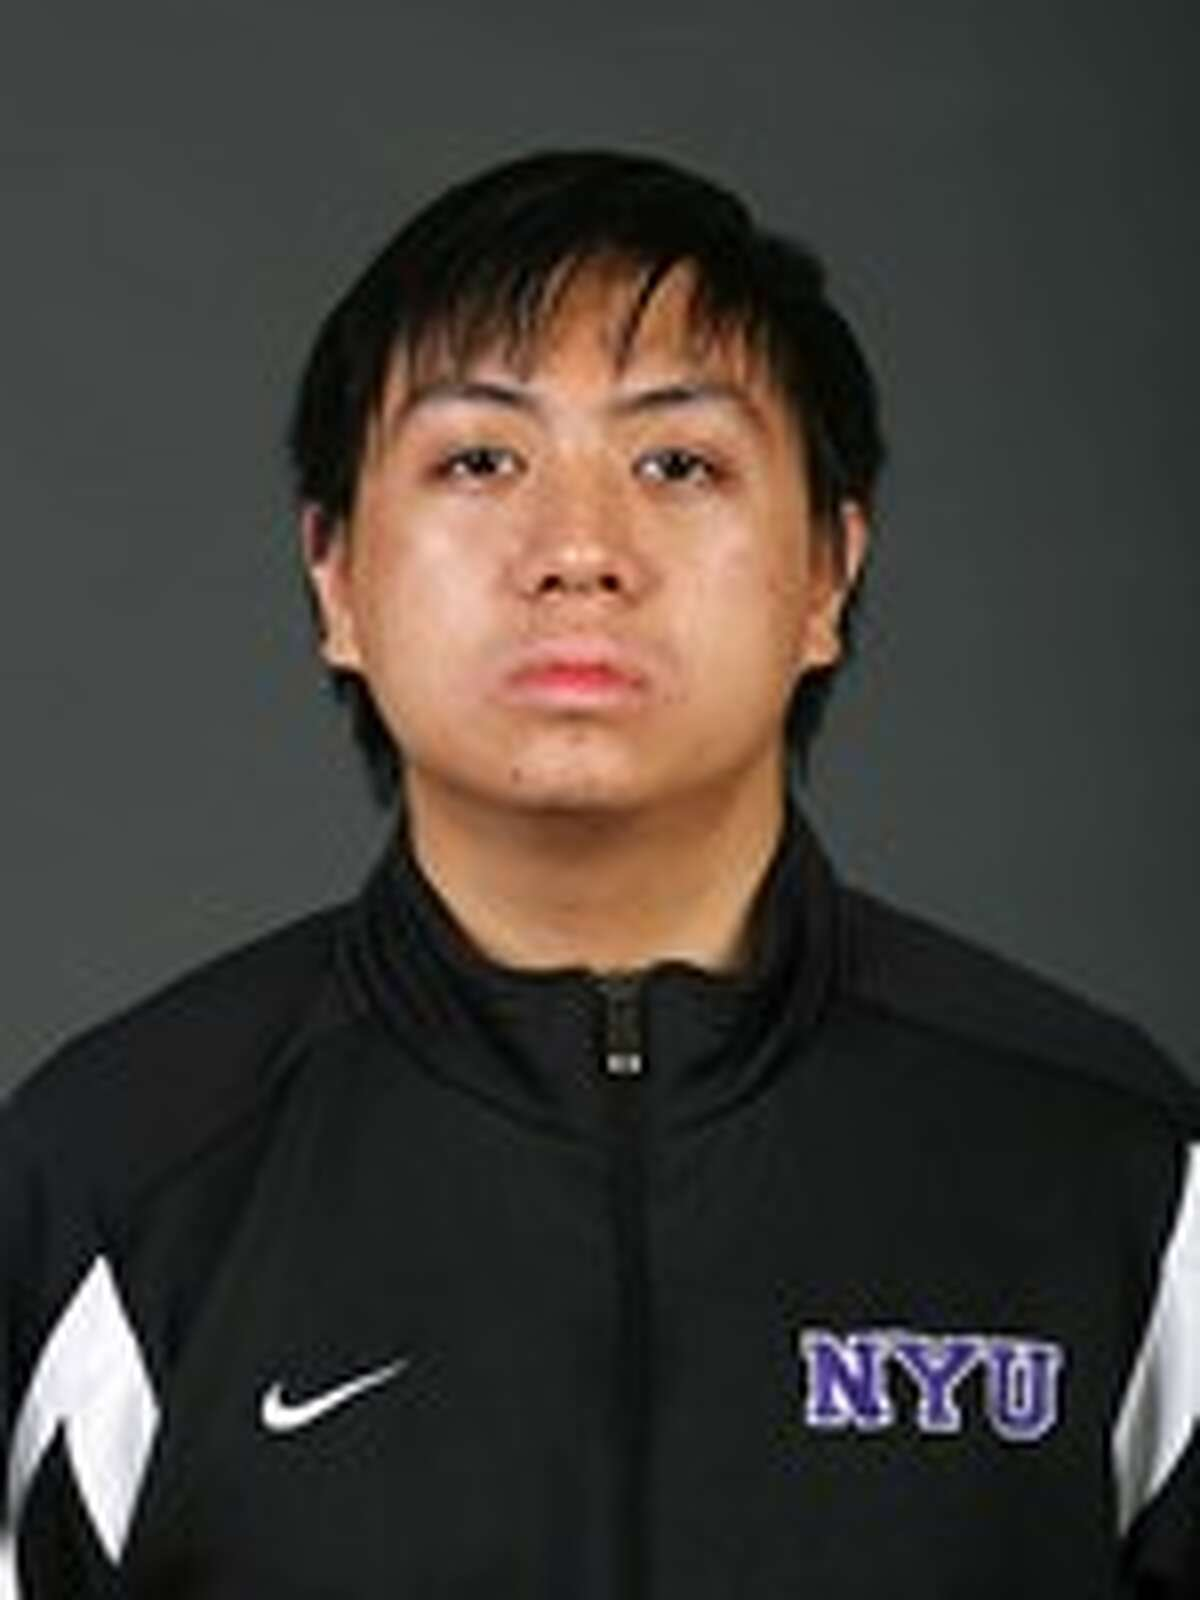 A New York University fencing team photo of Jonathan Tang, 24, of Brooklyn, who drowned in Stewart's Pond in Hadley, Saratoga County Sept. 20, 2014. He was currently attending Columbia University medical school.